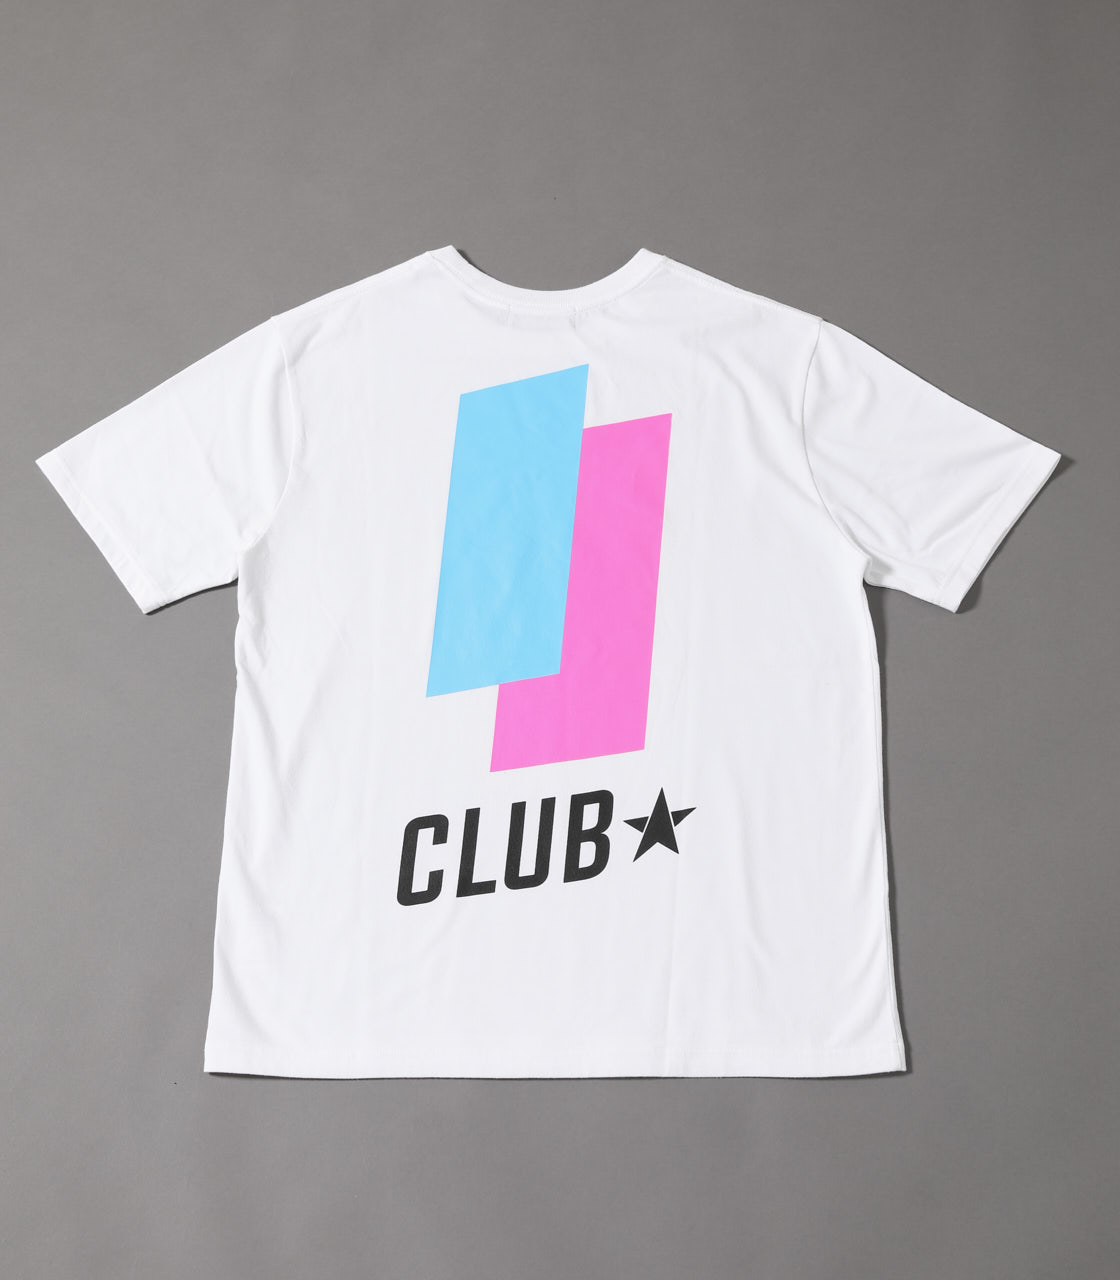 【AZUL BY MOUSSY】CLUBAZUL 90'S T-SHIRTS 詳細画像 WHT 2